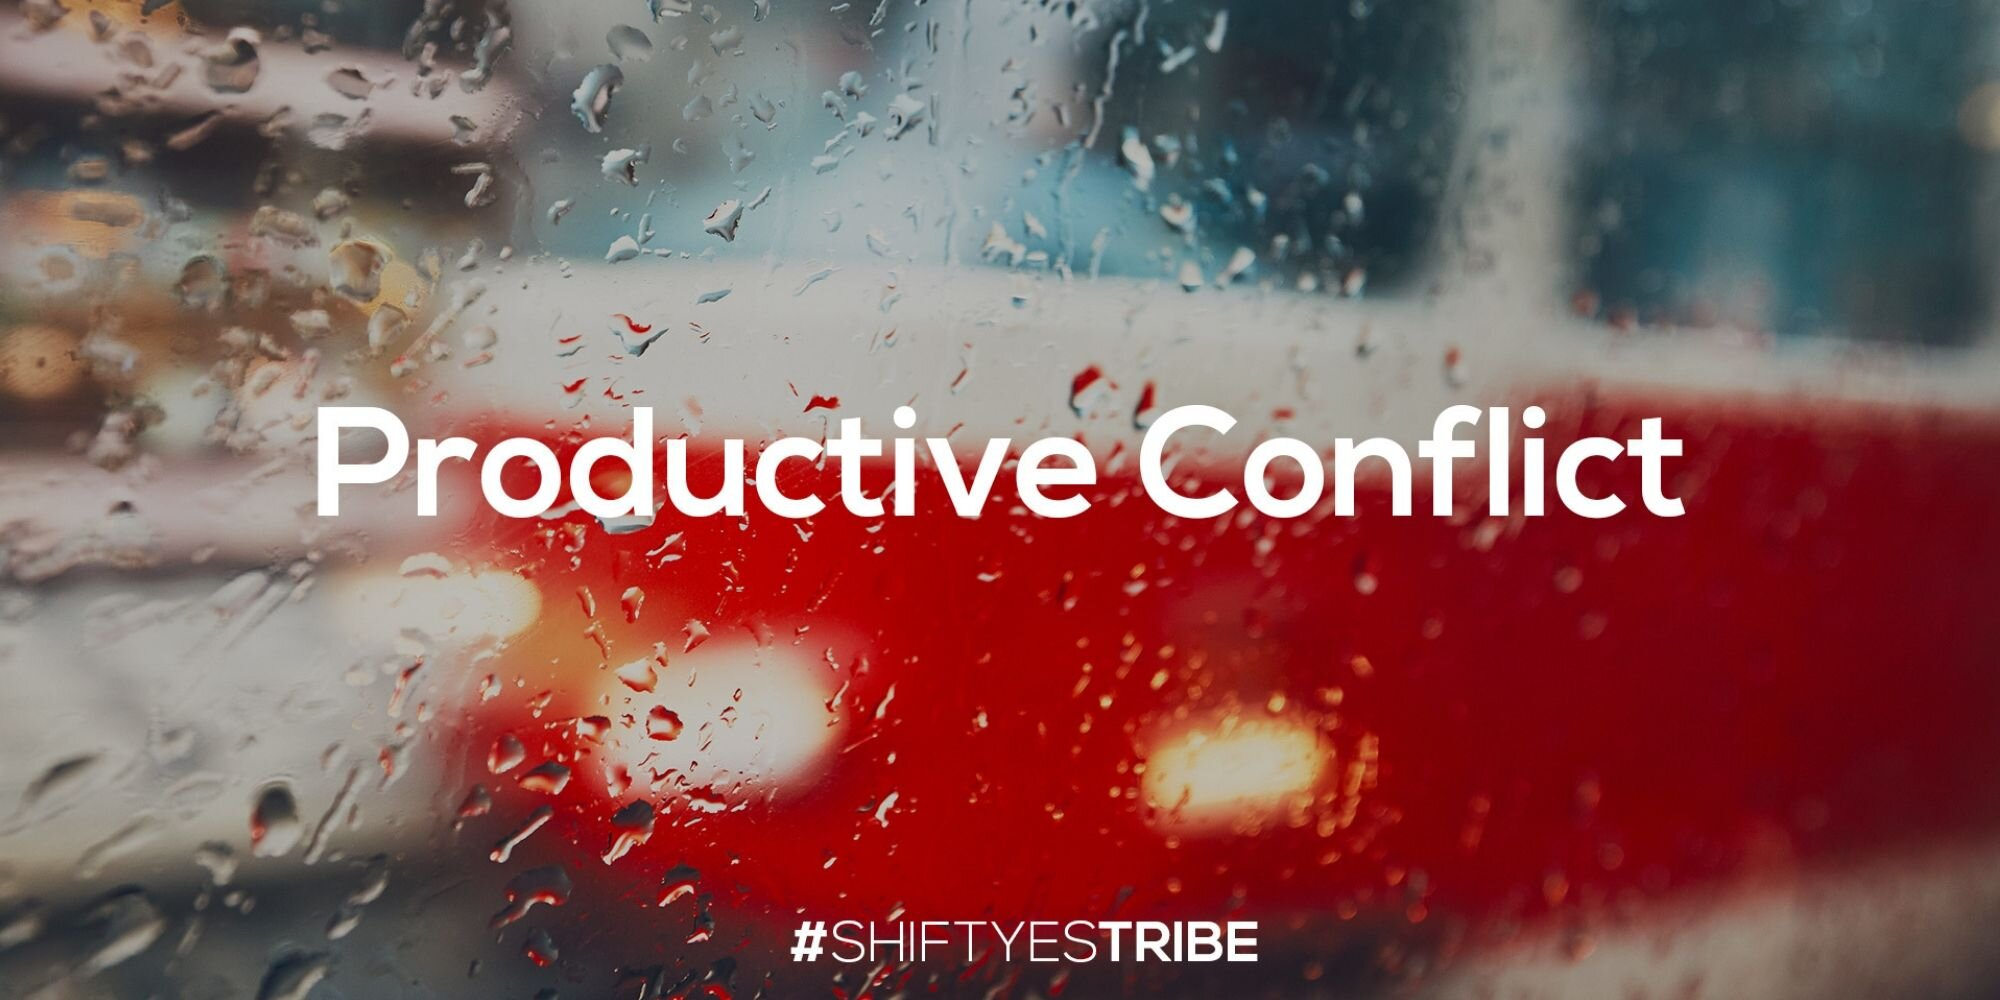 Galen Emanuele #shiftyestribe Shift Yes Tribe Productive Conflict February 2019.jpg